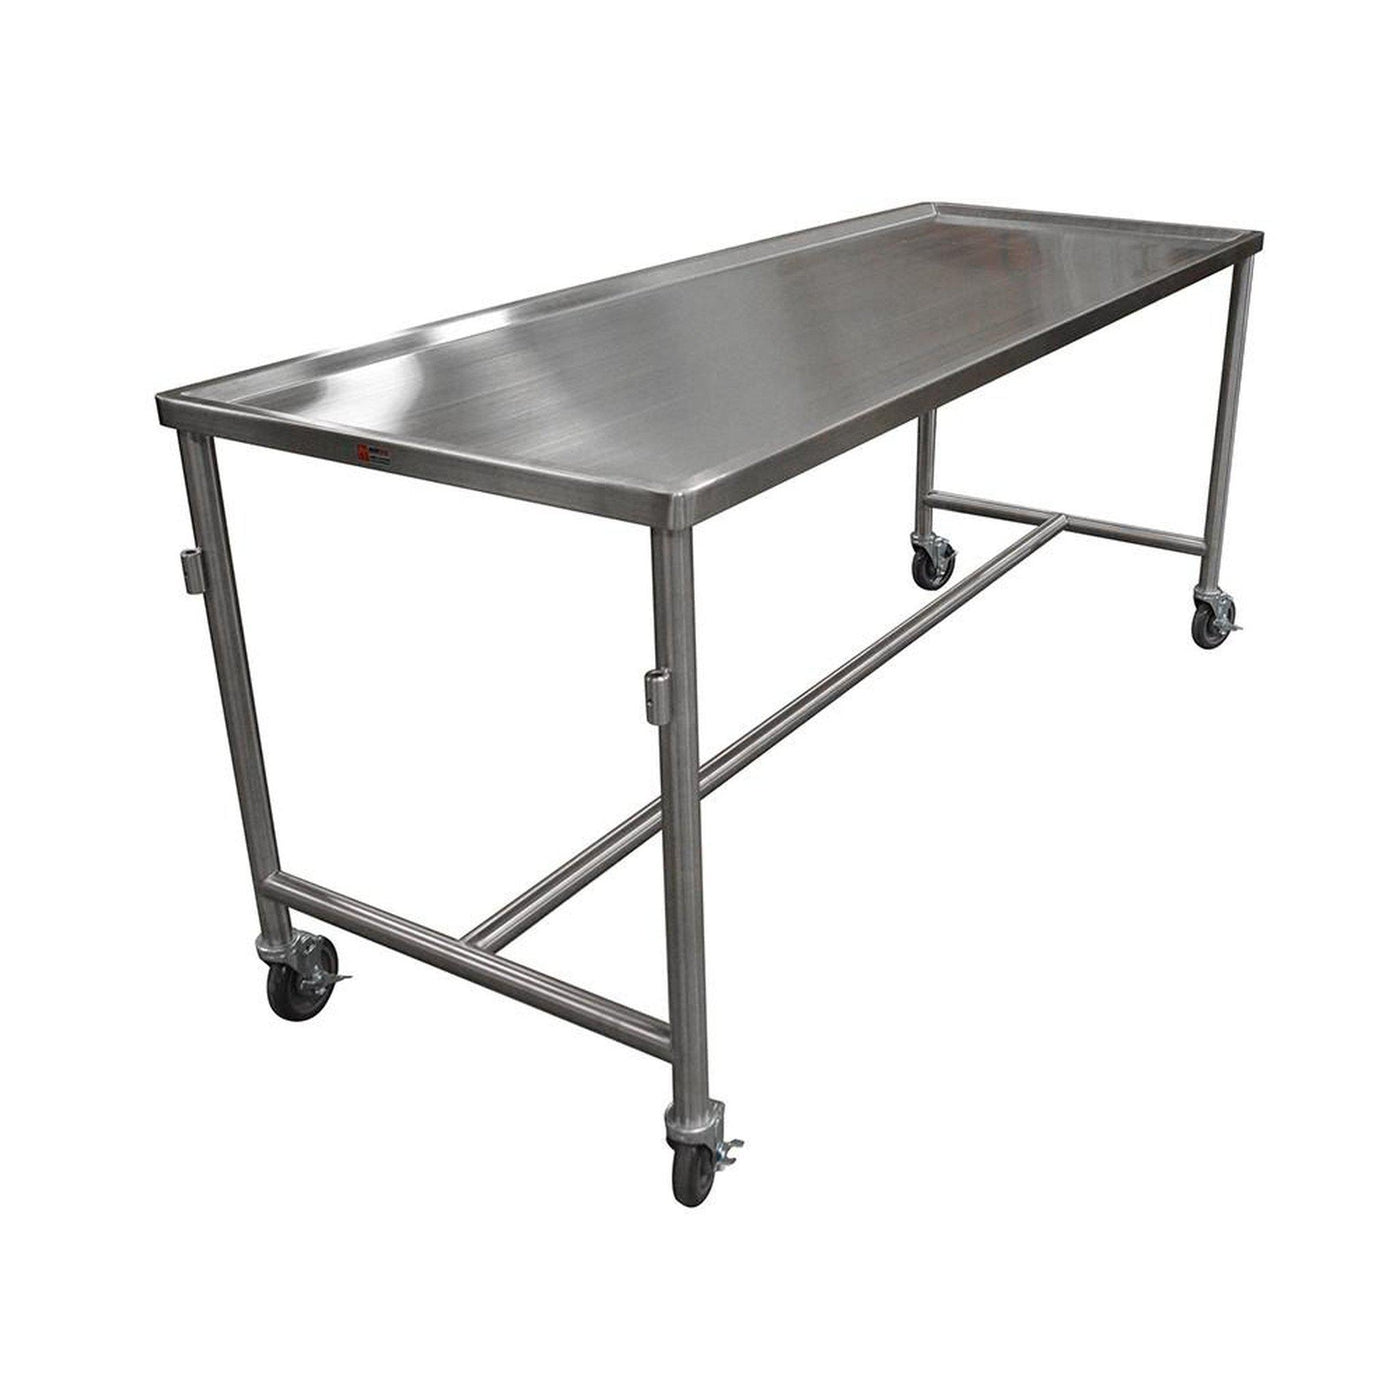 Anatomy Dissection Tables - Mortech Manufacturing Company